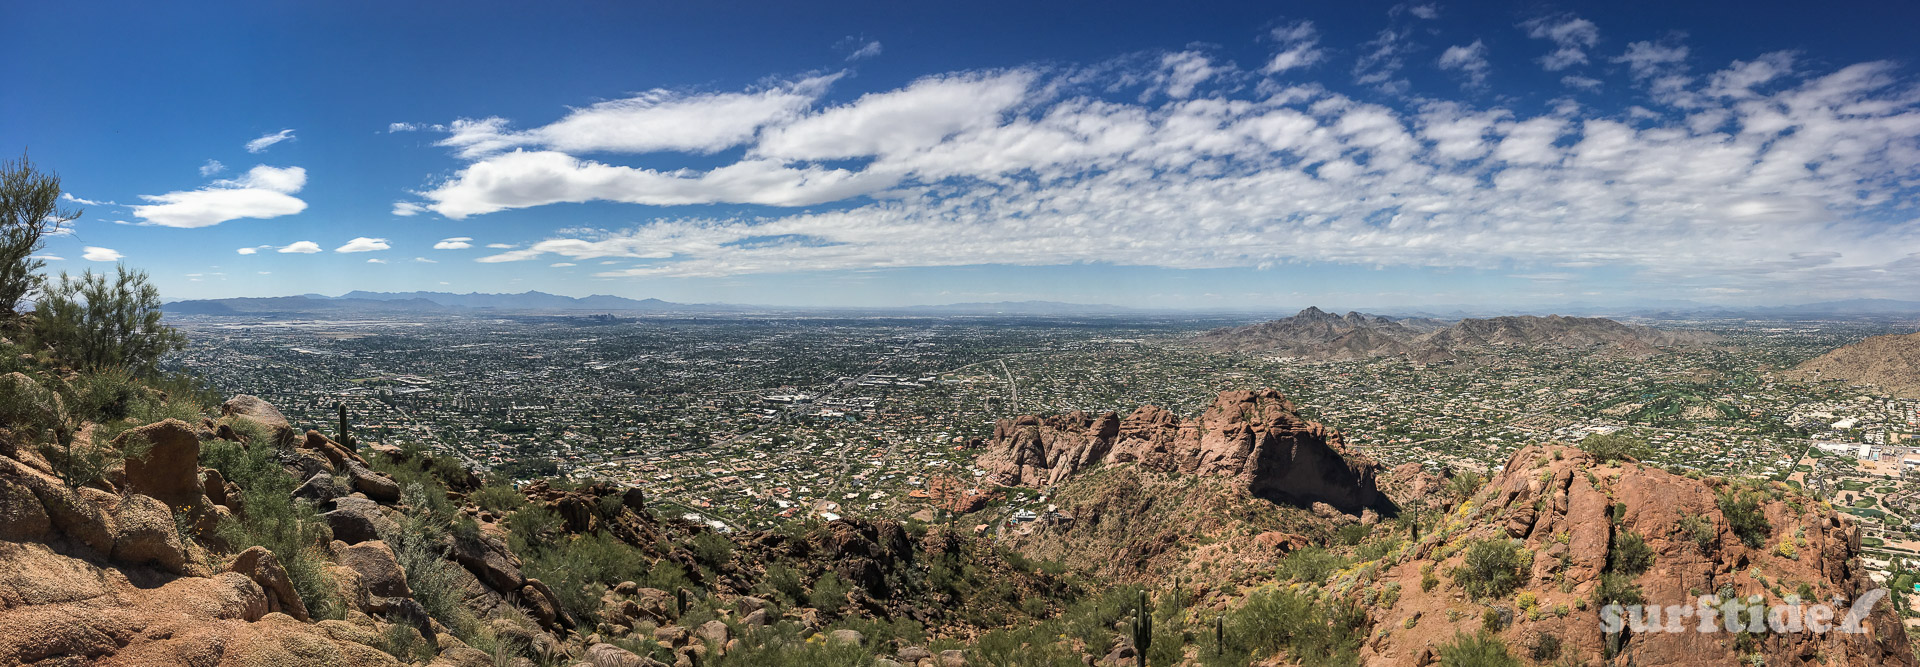 Panoramic photo the city of Phoenix from Camelback Mountain